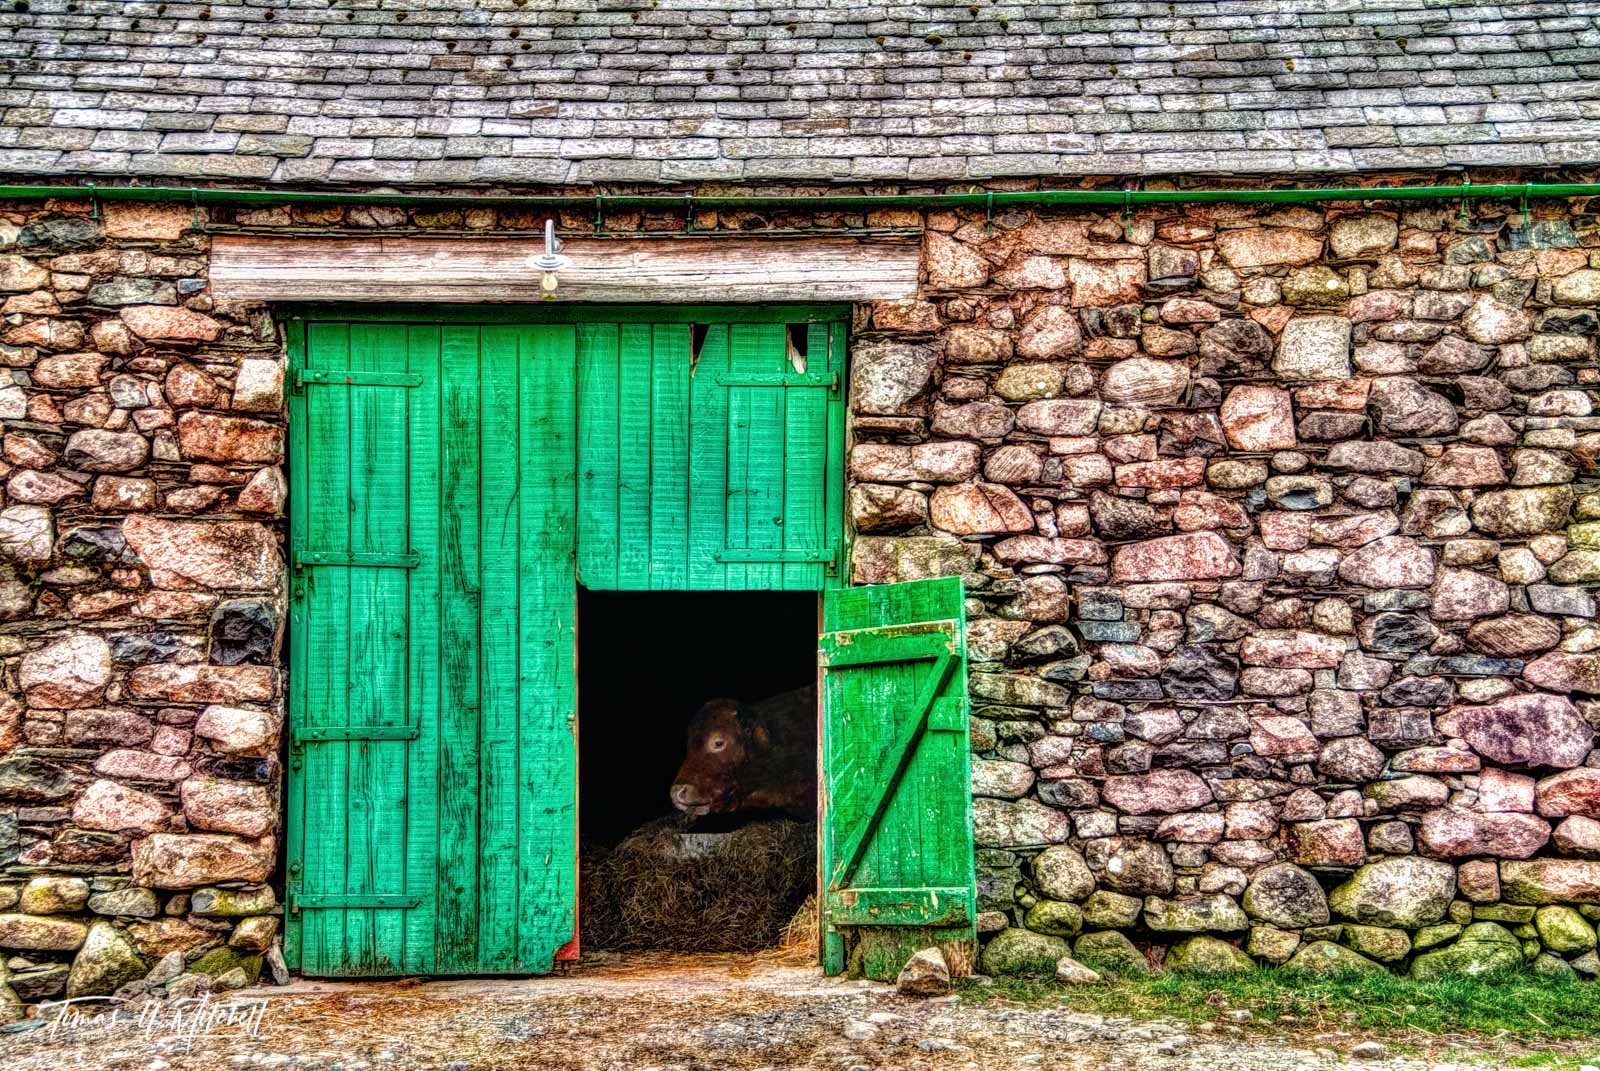 limited edition, museum quality, limited edition, prints, photograph, cow, wasdale head, england, lake district, photobombed, barn, door, scafell pike, photo